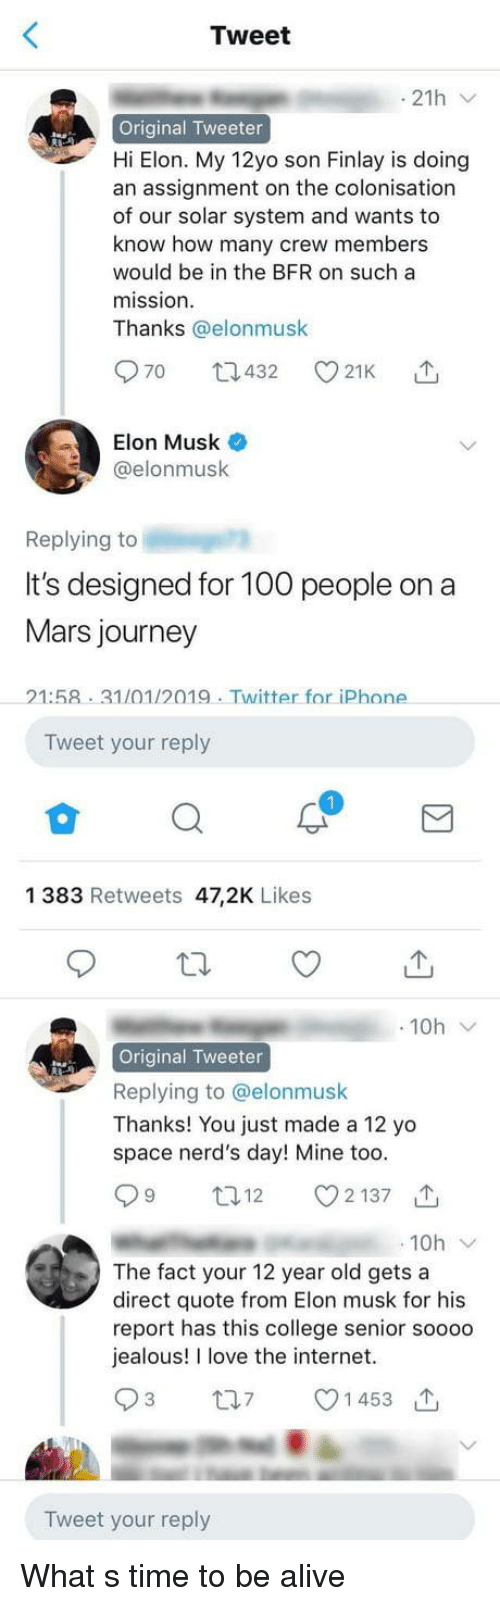 Thanks You: Tweet  Original Tweeter  Hi Elon. My 12yo son Finlay is doing  an assignment on the colonisation  of our solar system and wants to  know how many crew members  would be in the BFR on such a  mission  Thanks @elonmusk  Elon Musk  @elonmusk  Replying to  It's designed for 100 people on a  Mars journey  21:58 31/01/2019. Twitter for iPhone  Tweet your reply  1 383 Retweets 47,2K Likes  t  で  10h  Original Tweeter  Replying to @elonmusk  Thanks! You just made a 12 yo  space nerd's day! Mine too.  12 2137  10h  The fact your 12 year old gets a  direct quote from Elon musk for his  report has this college senior soooo  jealous! I love the internet.  1 453  Tweet your reply What s time to be alive